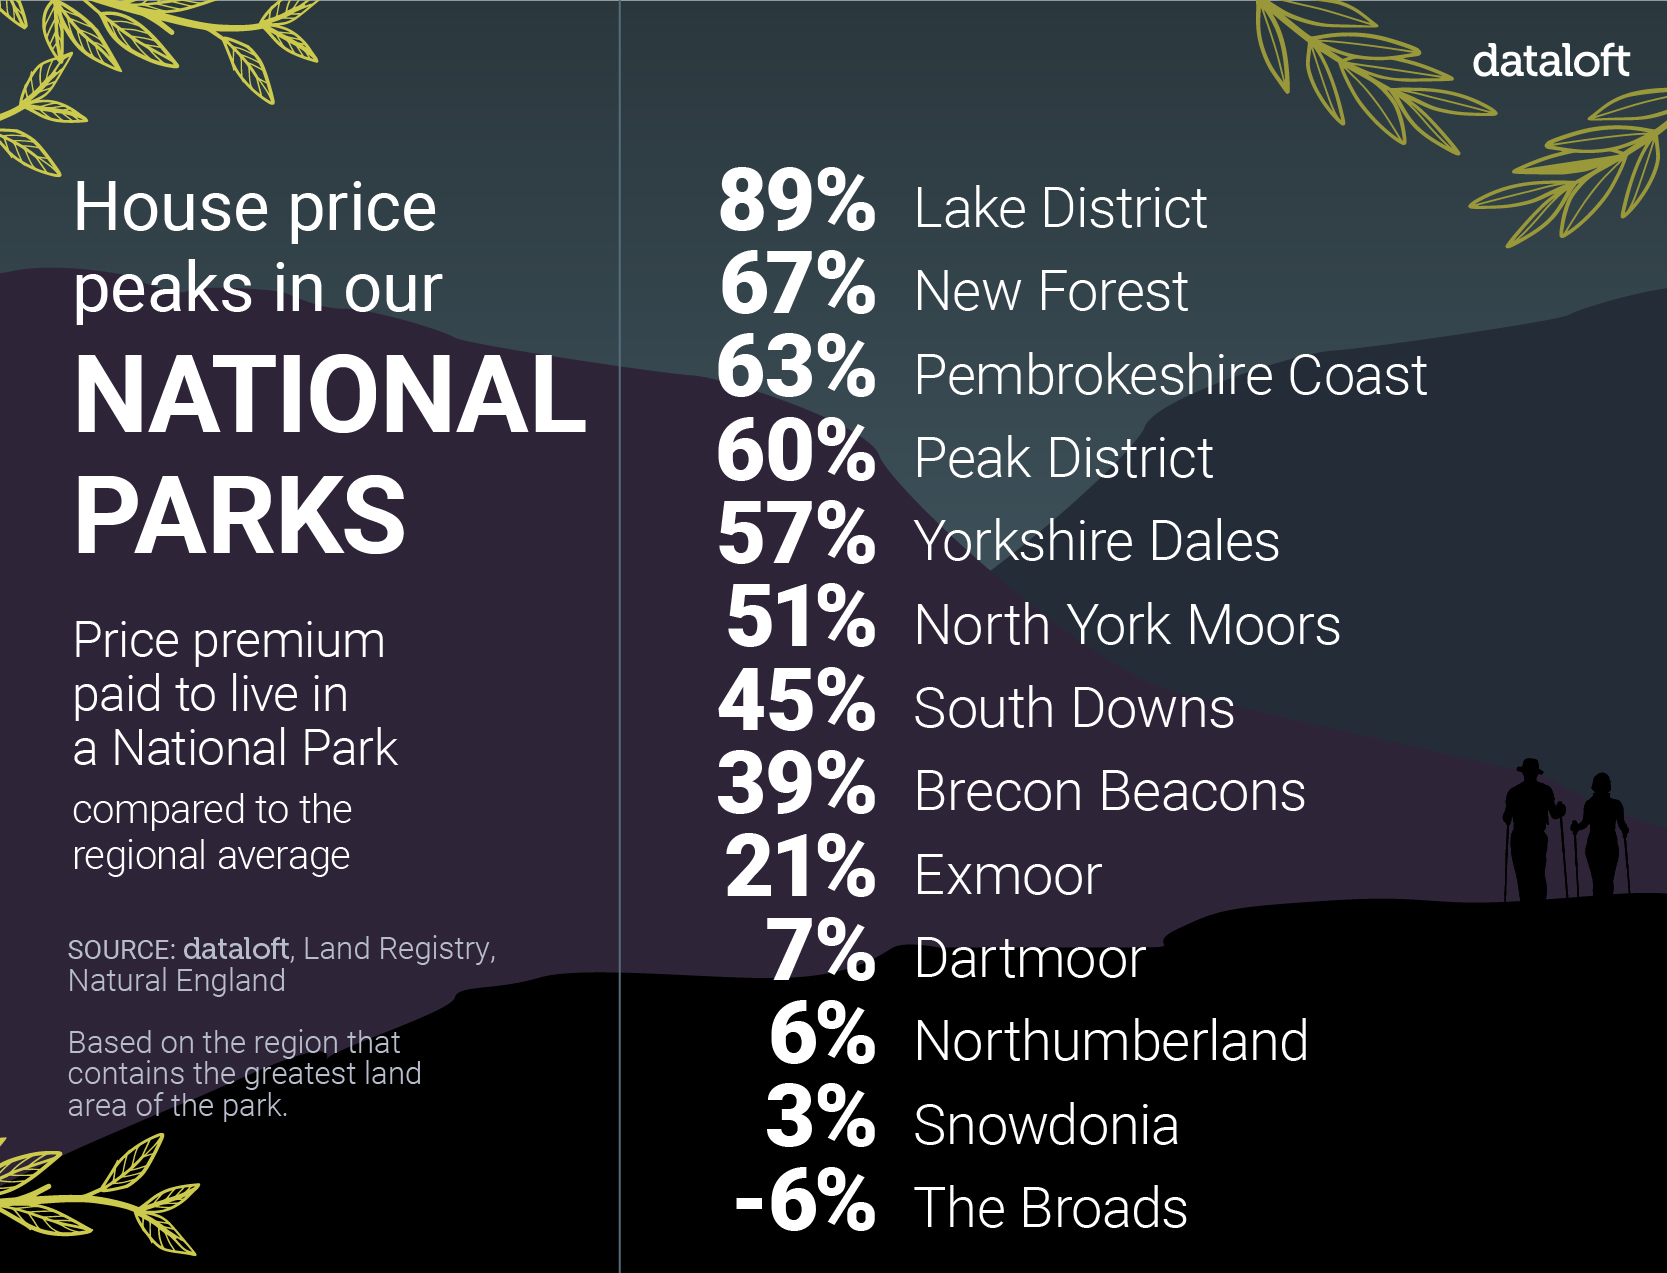 HOUSE PRICE PEAKS IN OUR NATIONAL PARKS: ALL PARKS